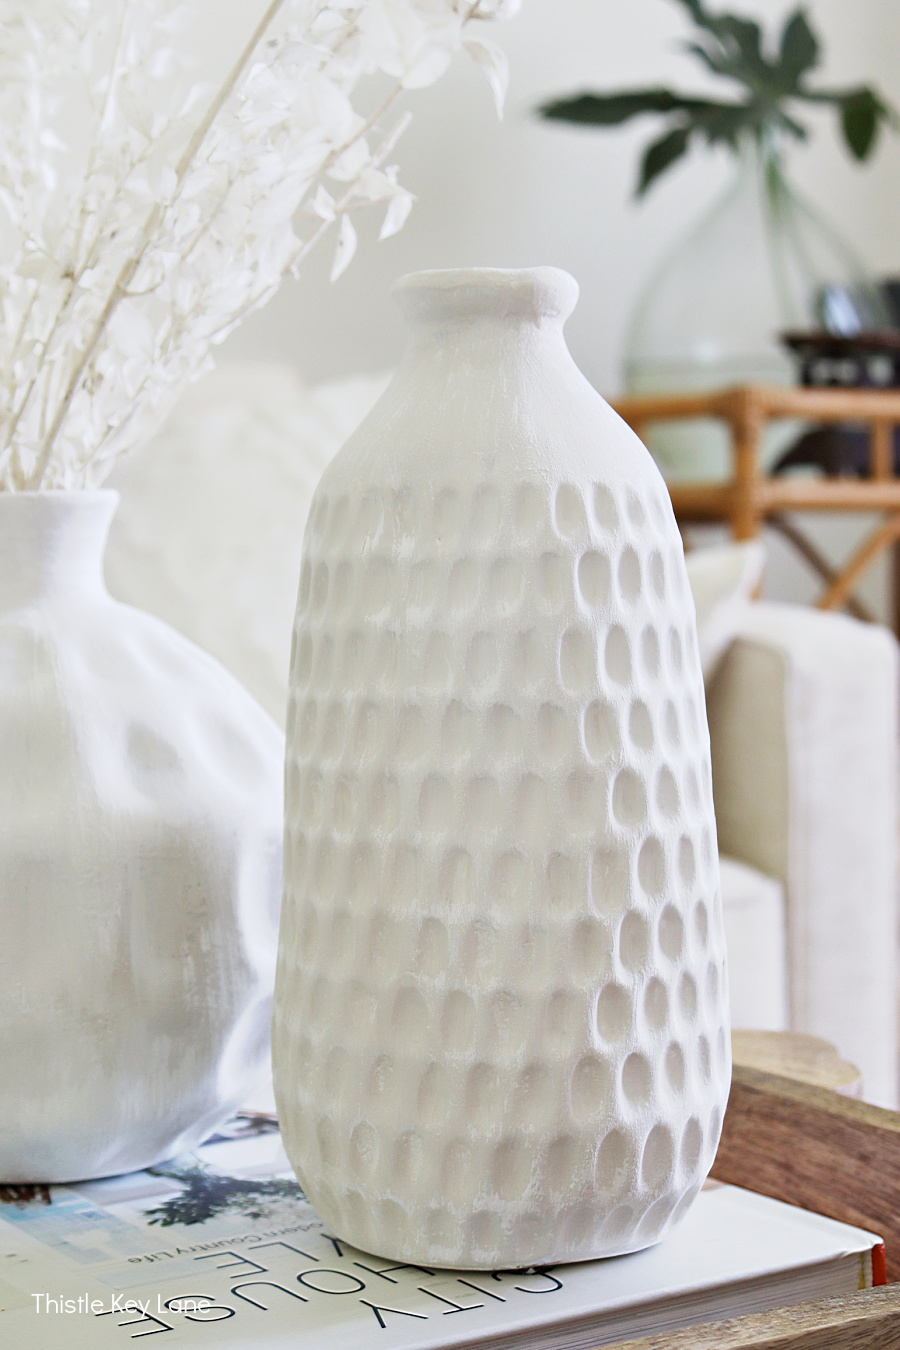 Tall ceramic vase with circle designs. Thrift Store Vase Makeover With Paint.